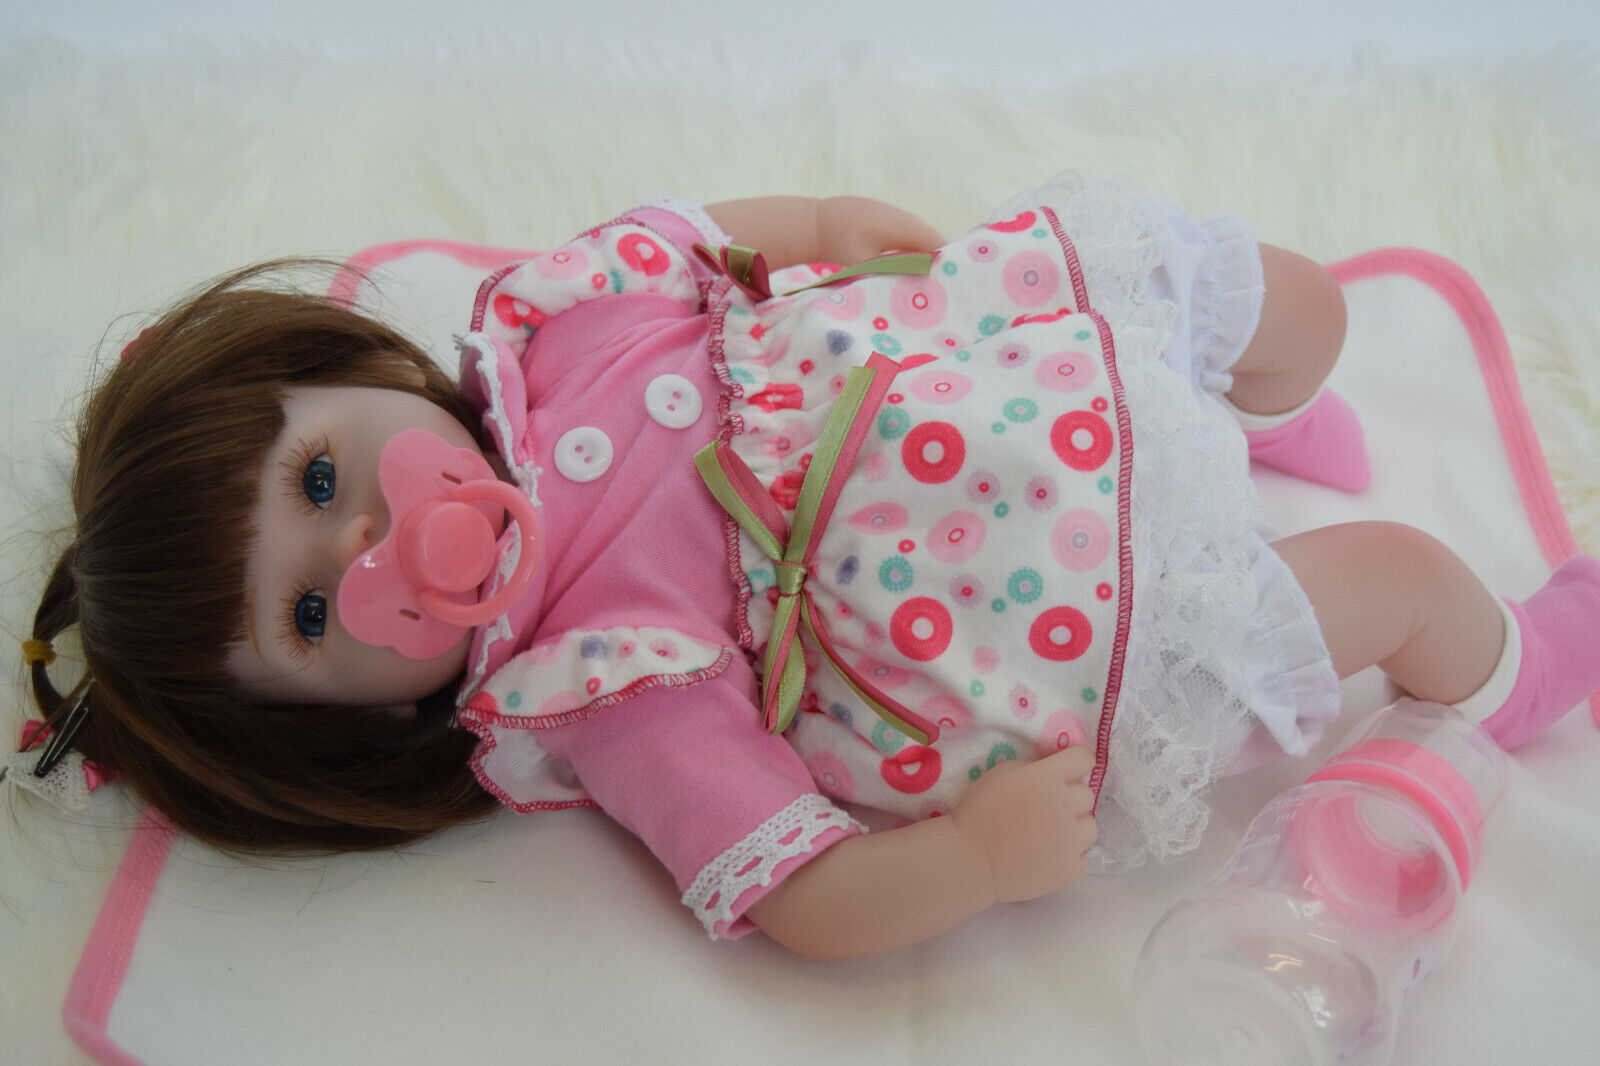 """16"""" Reborn Soft Vinyl Baby Doll Clothing & Accessories Silicone Doll Pink Outfit"""